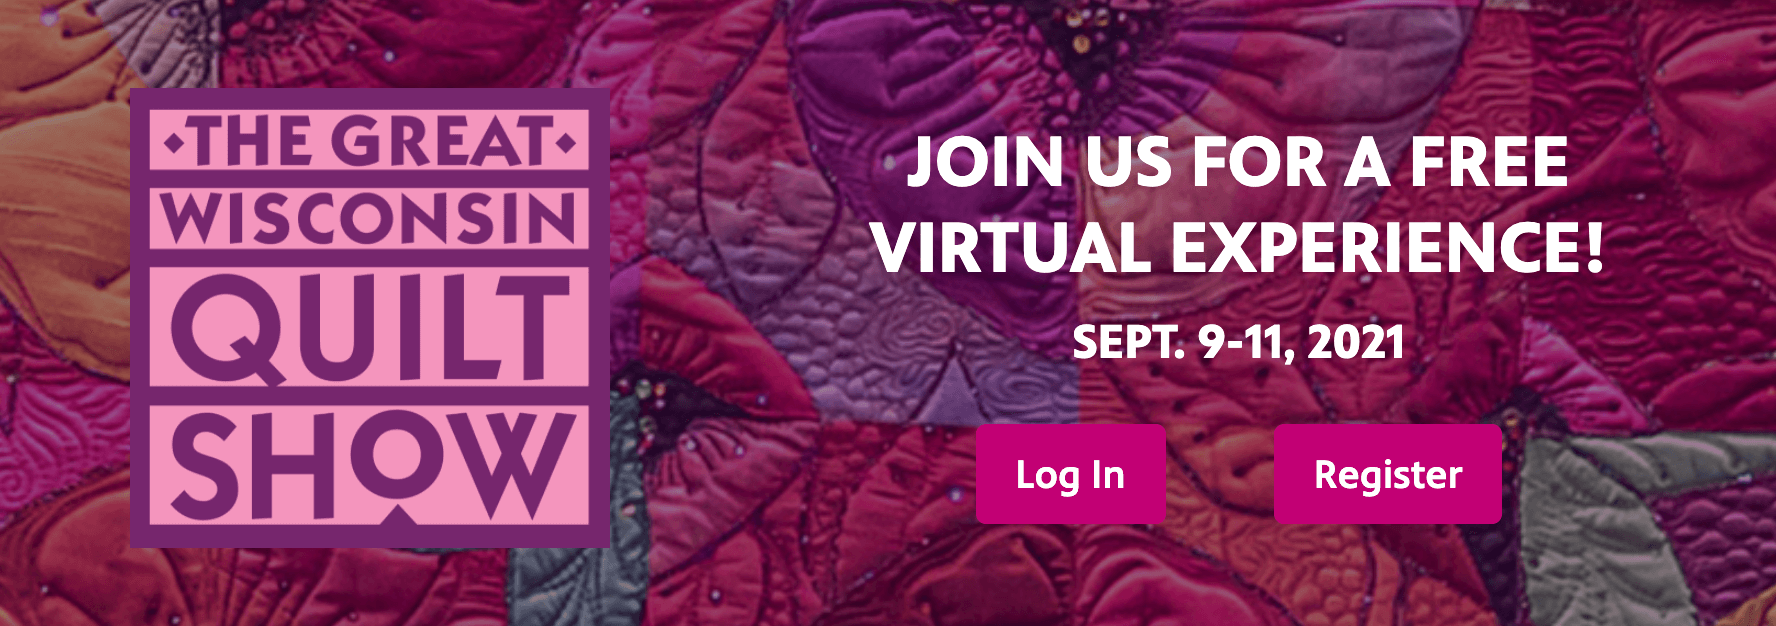 Join Nancy Zieman Productions for the Free Virtual Great Wisconsin Quilt Show at QuiltShow.com